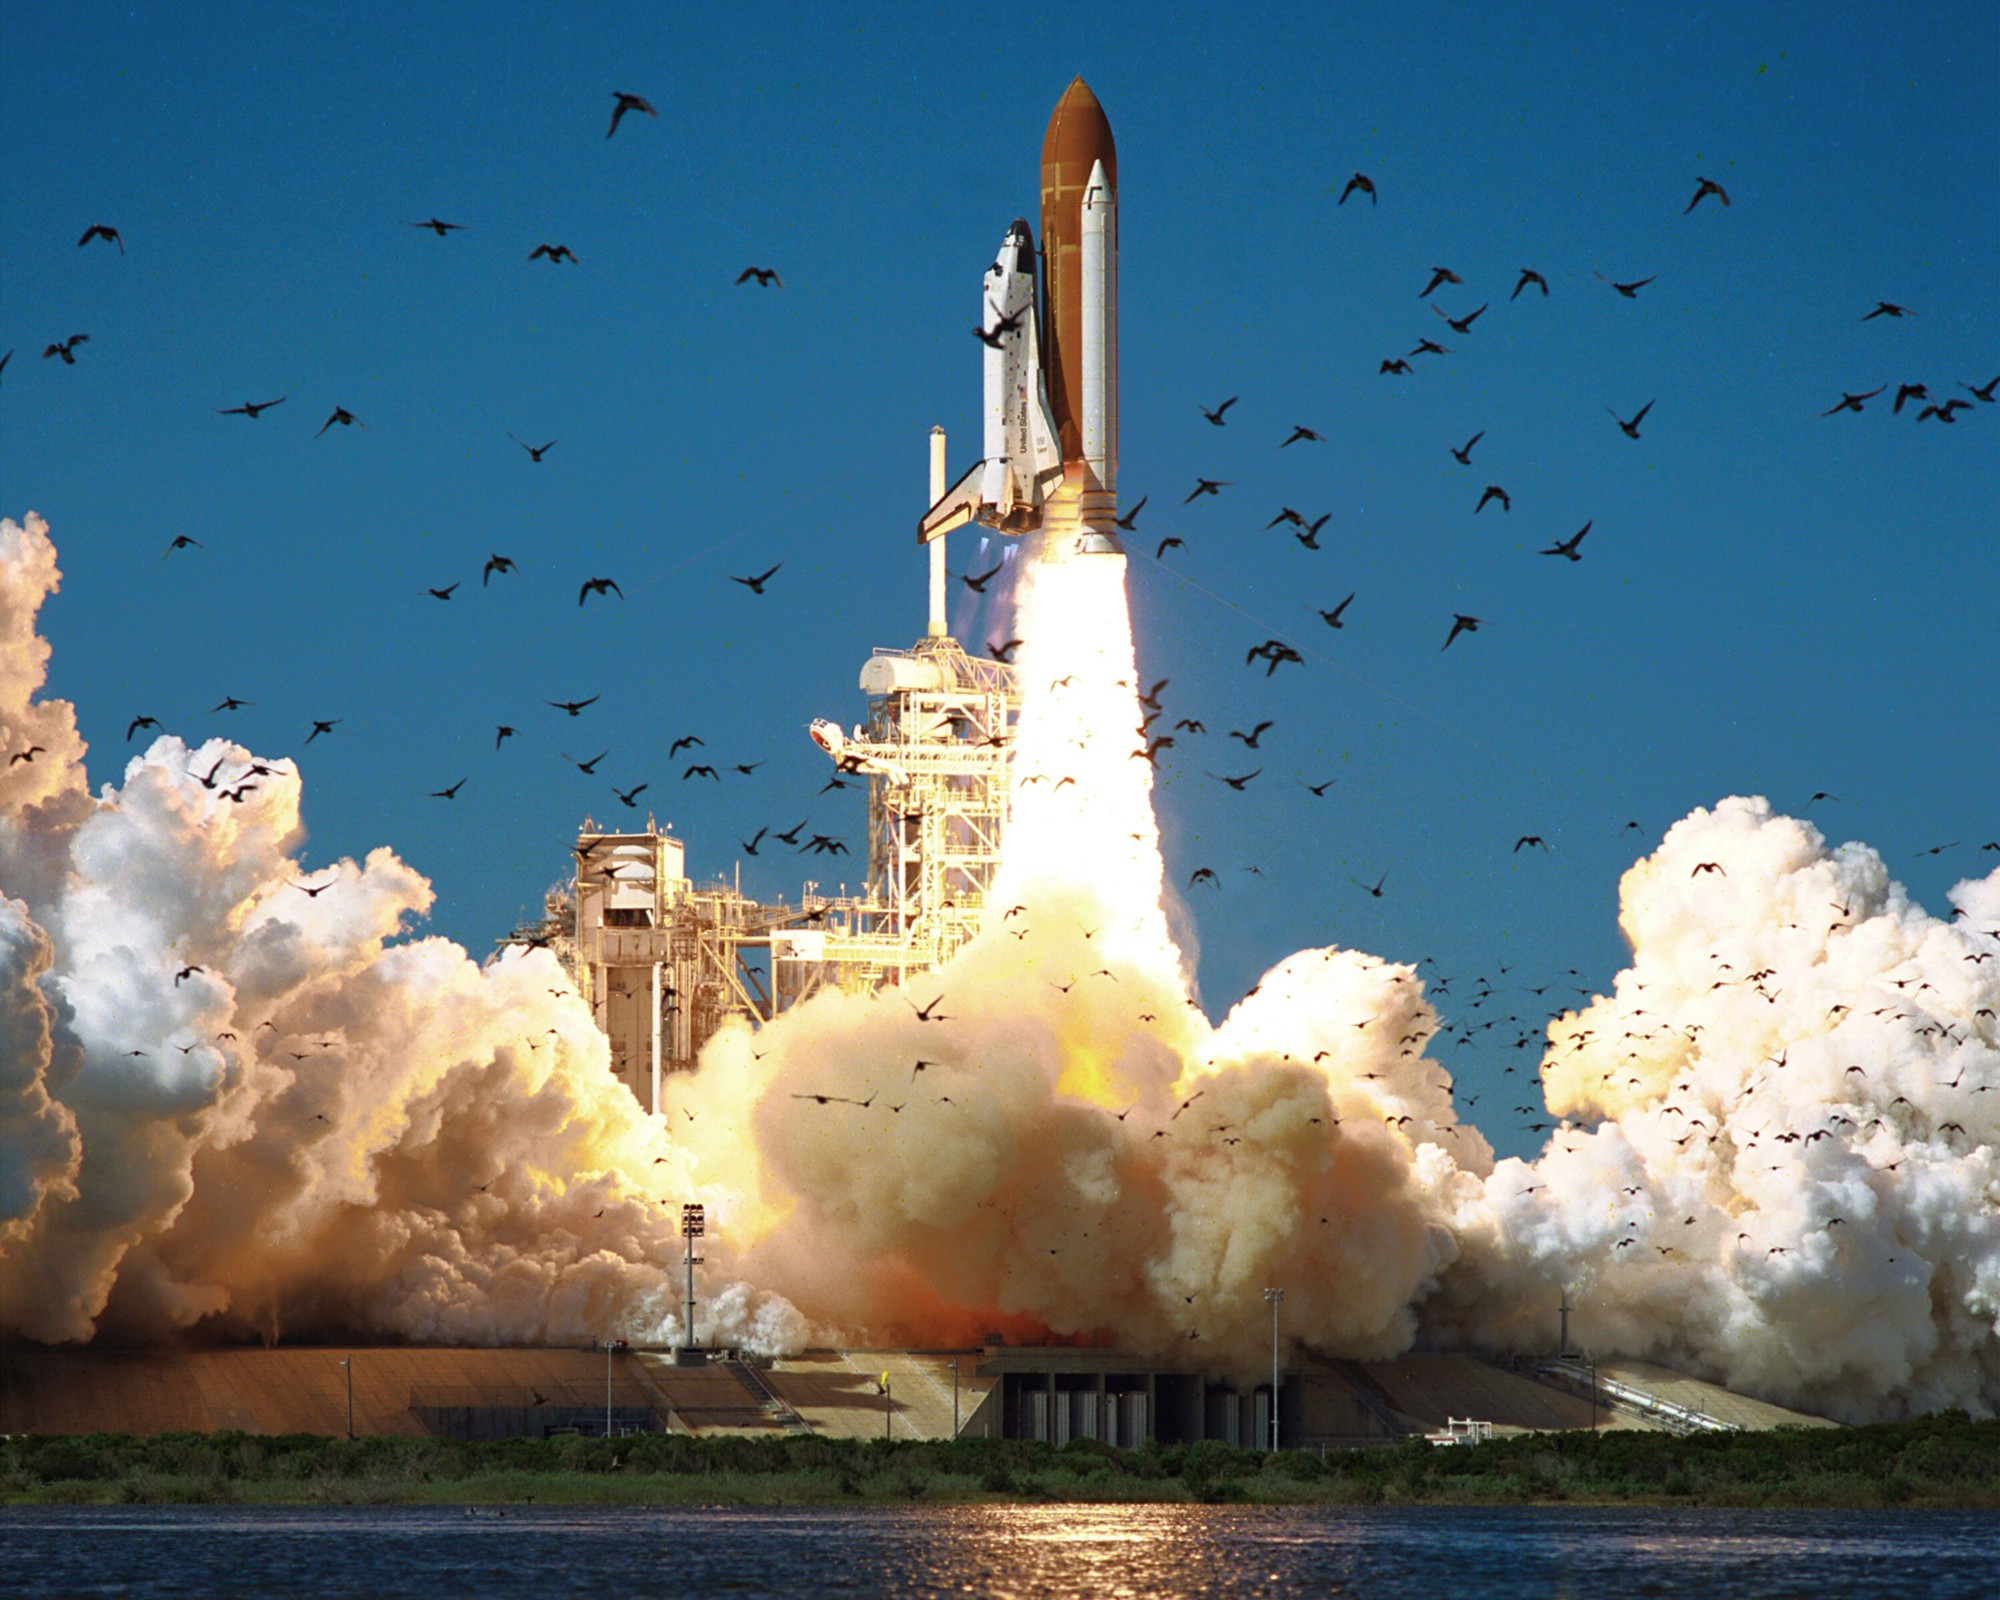 space shuttle voyager - photo #9